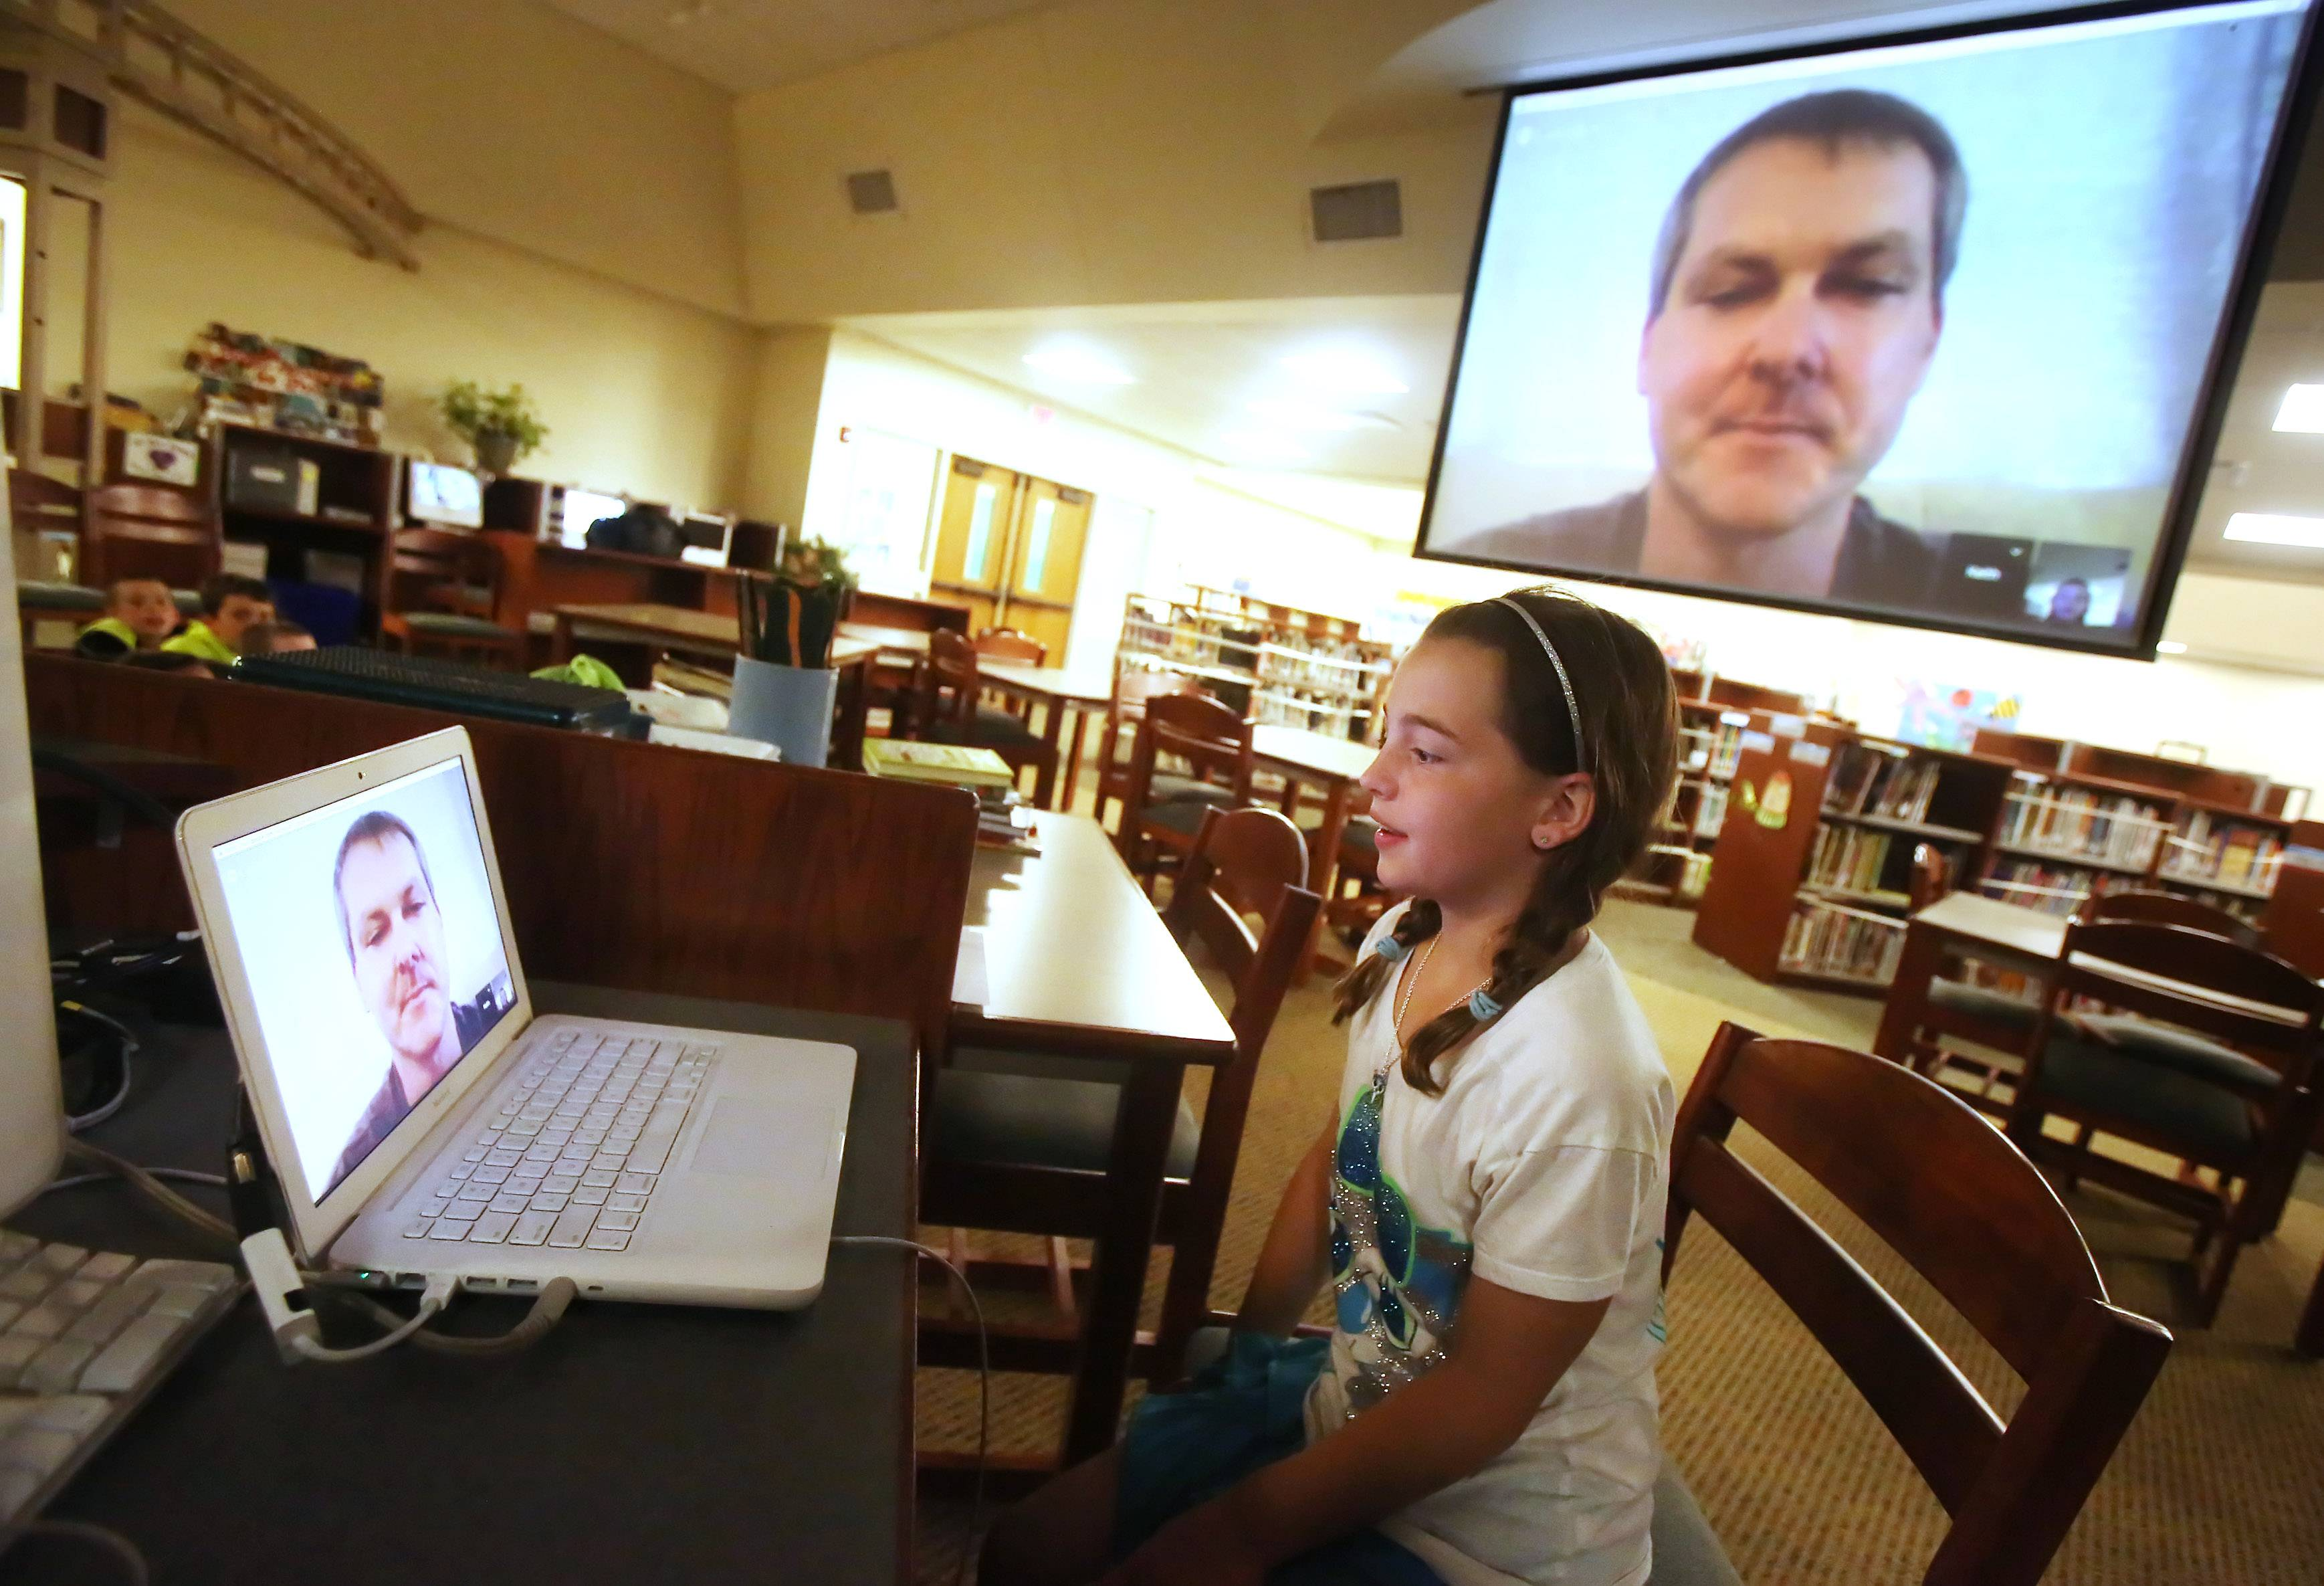 Fourth grader Maddie Rupert asks a question during a video chat with marine biologist Keith Fischer Monday in the learning center at Butterfield School in Libertyville. The students are studying ecosystems and talked with Fischer, who works with the Fish and Wildlife Institute in St. Petersburg, Florida.